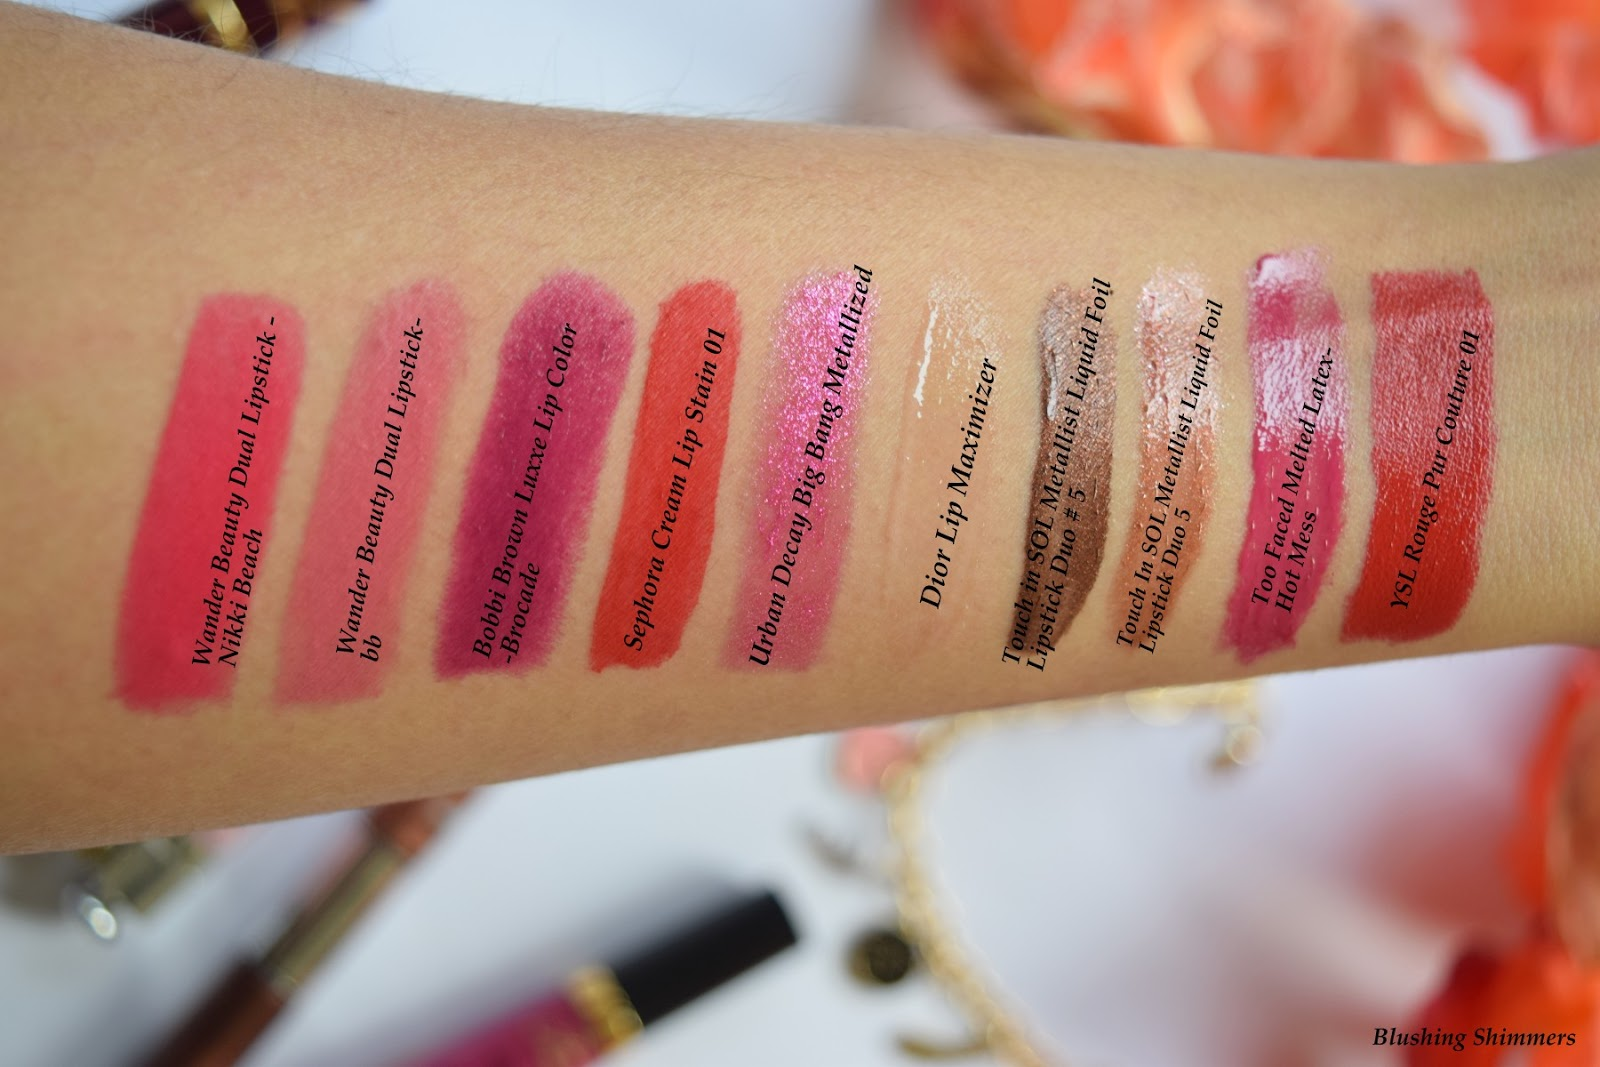 Sephora Favorites Give Me More Lip Set swatches